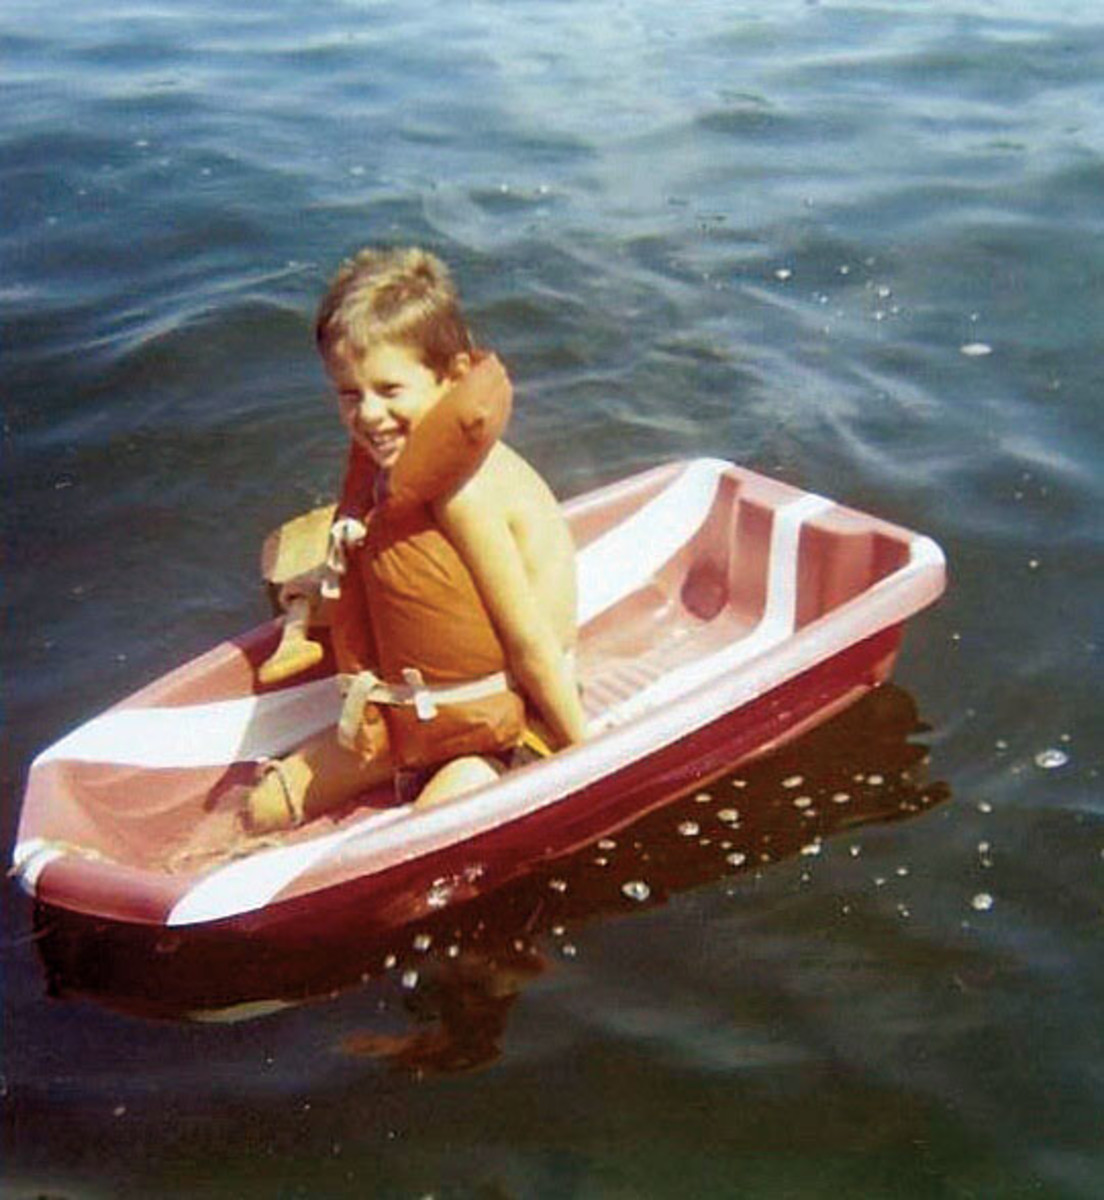 Ellis, in his first boat, was born into a boating family and says much of his childhood recreational time was spent on the water.